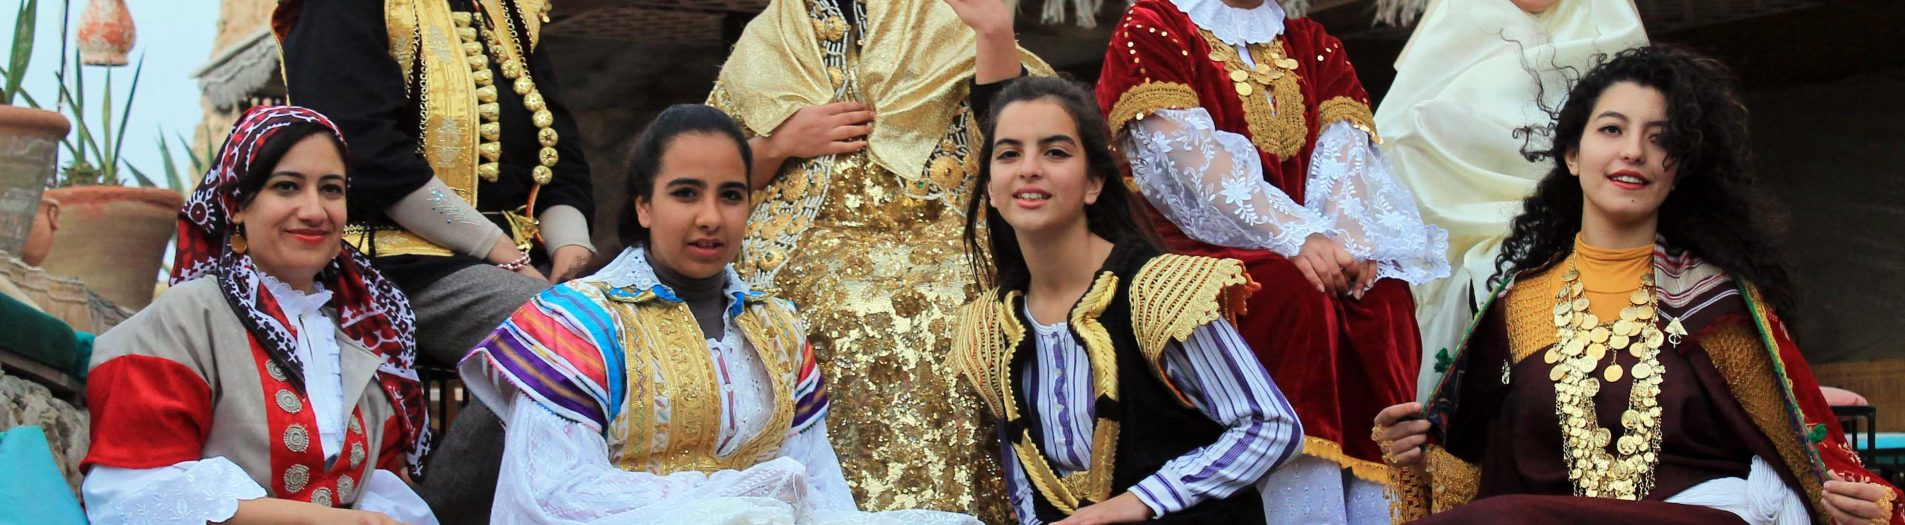 L'habit traditionnel Sfaxien à Hammamet et Nabeul